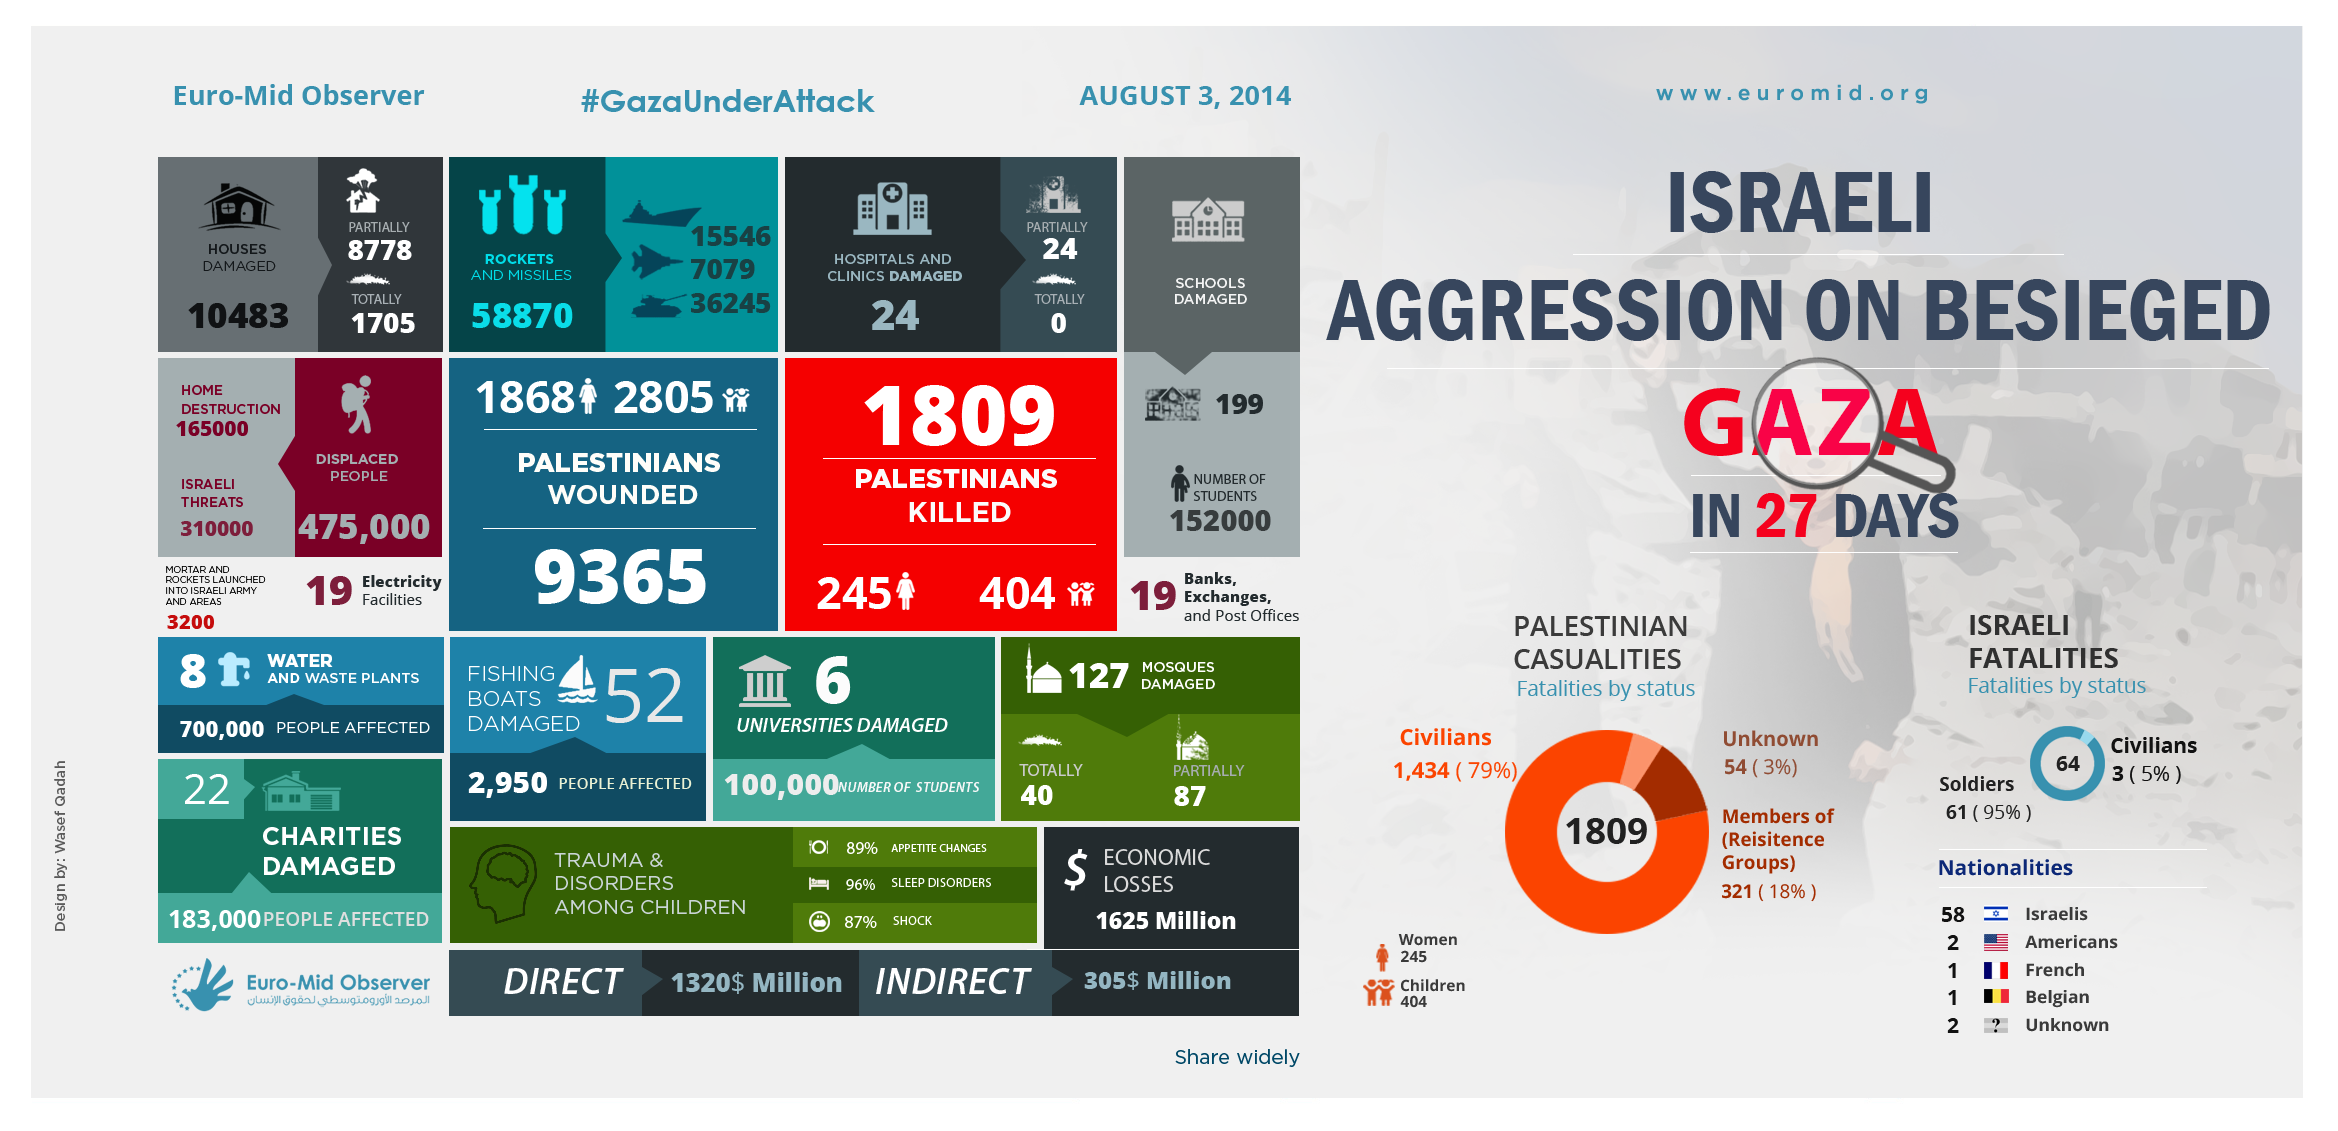 Israeli Aggression on besieged Gaza in 27 Days